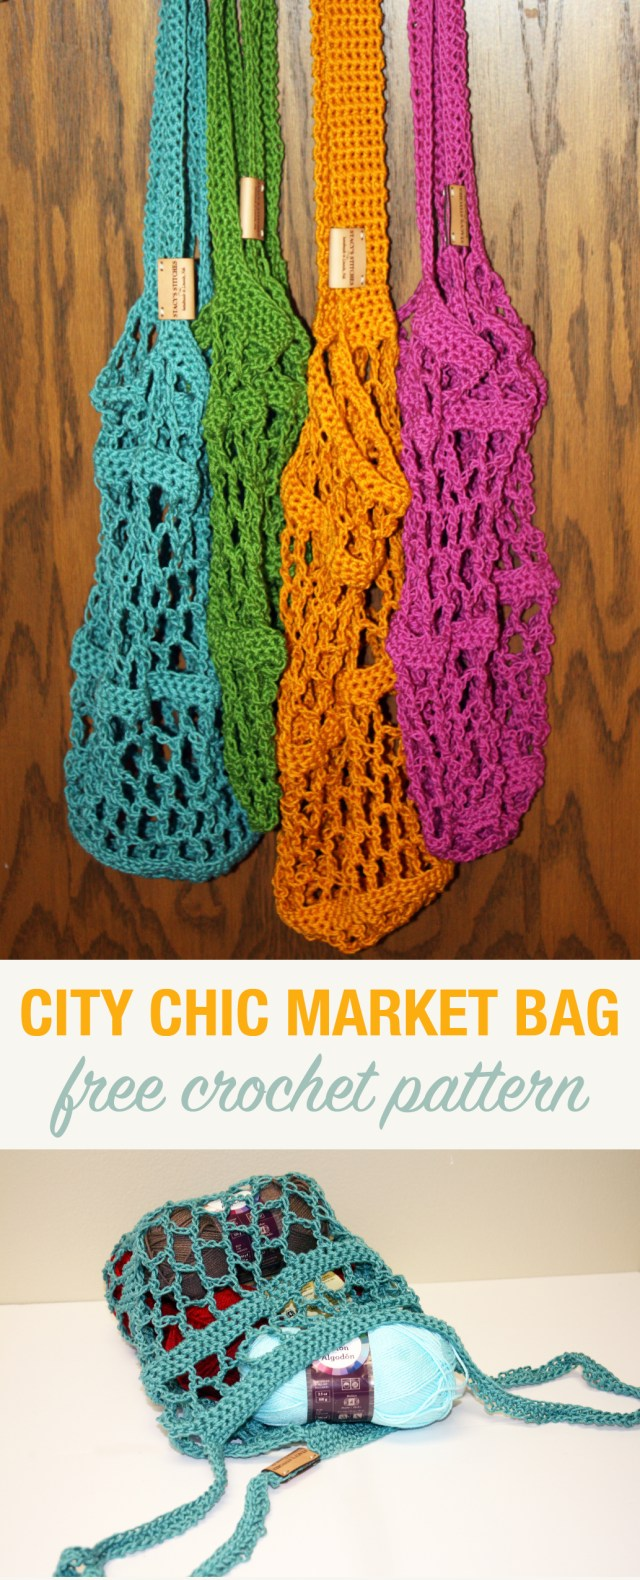 Free Crochet Pattern City Chic Market Bag Stacys Stitches